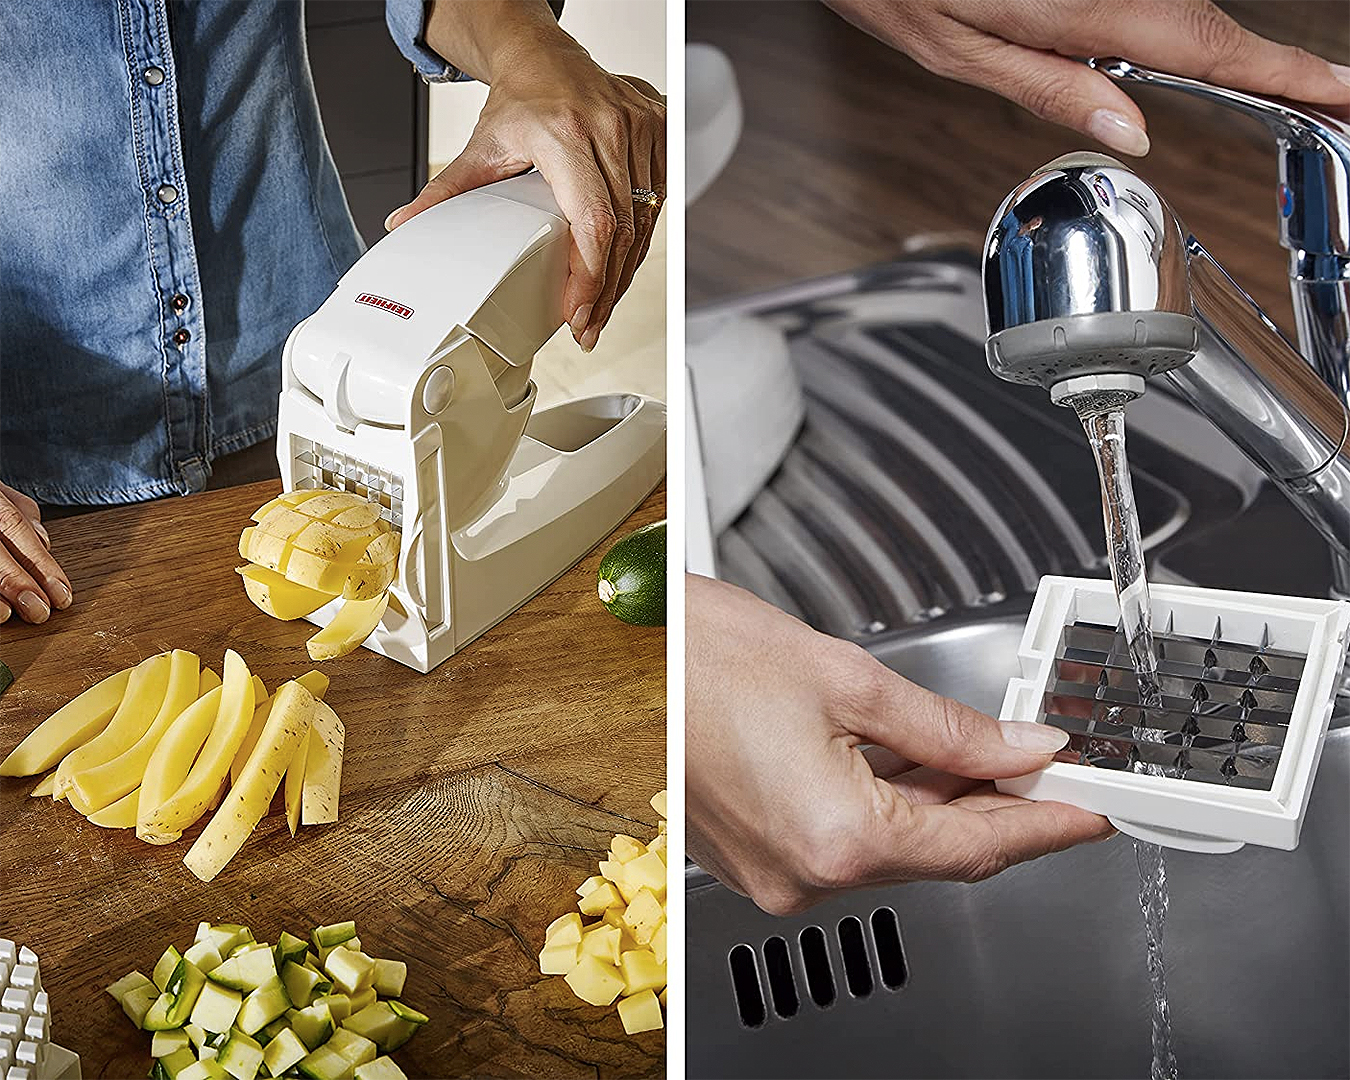 A potato chipper being rinsed under the tap.